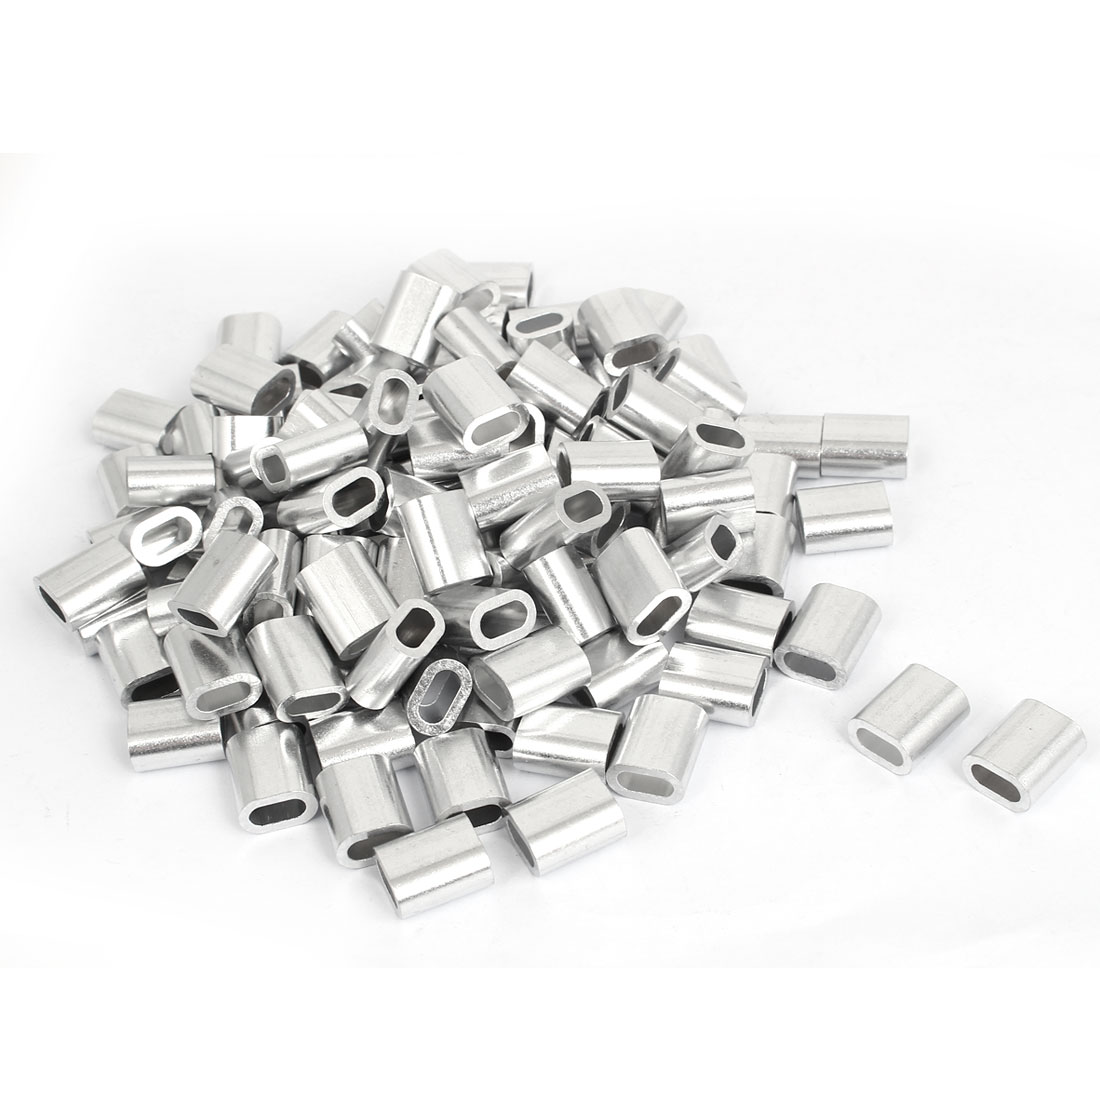 200 Pcs M5 Aluminium Ferrule Cable Crimps Sleeves Silver Tone